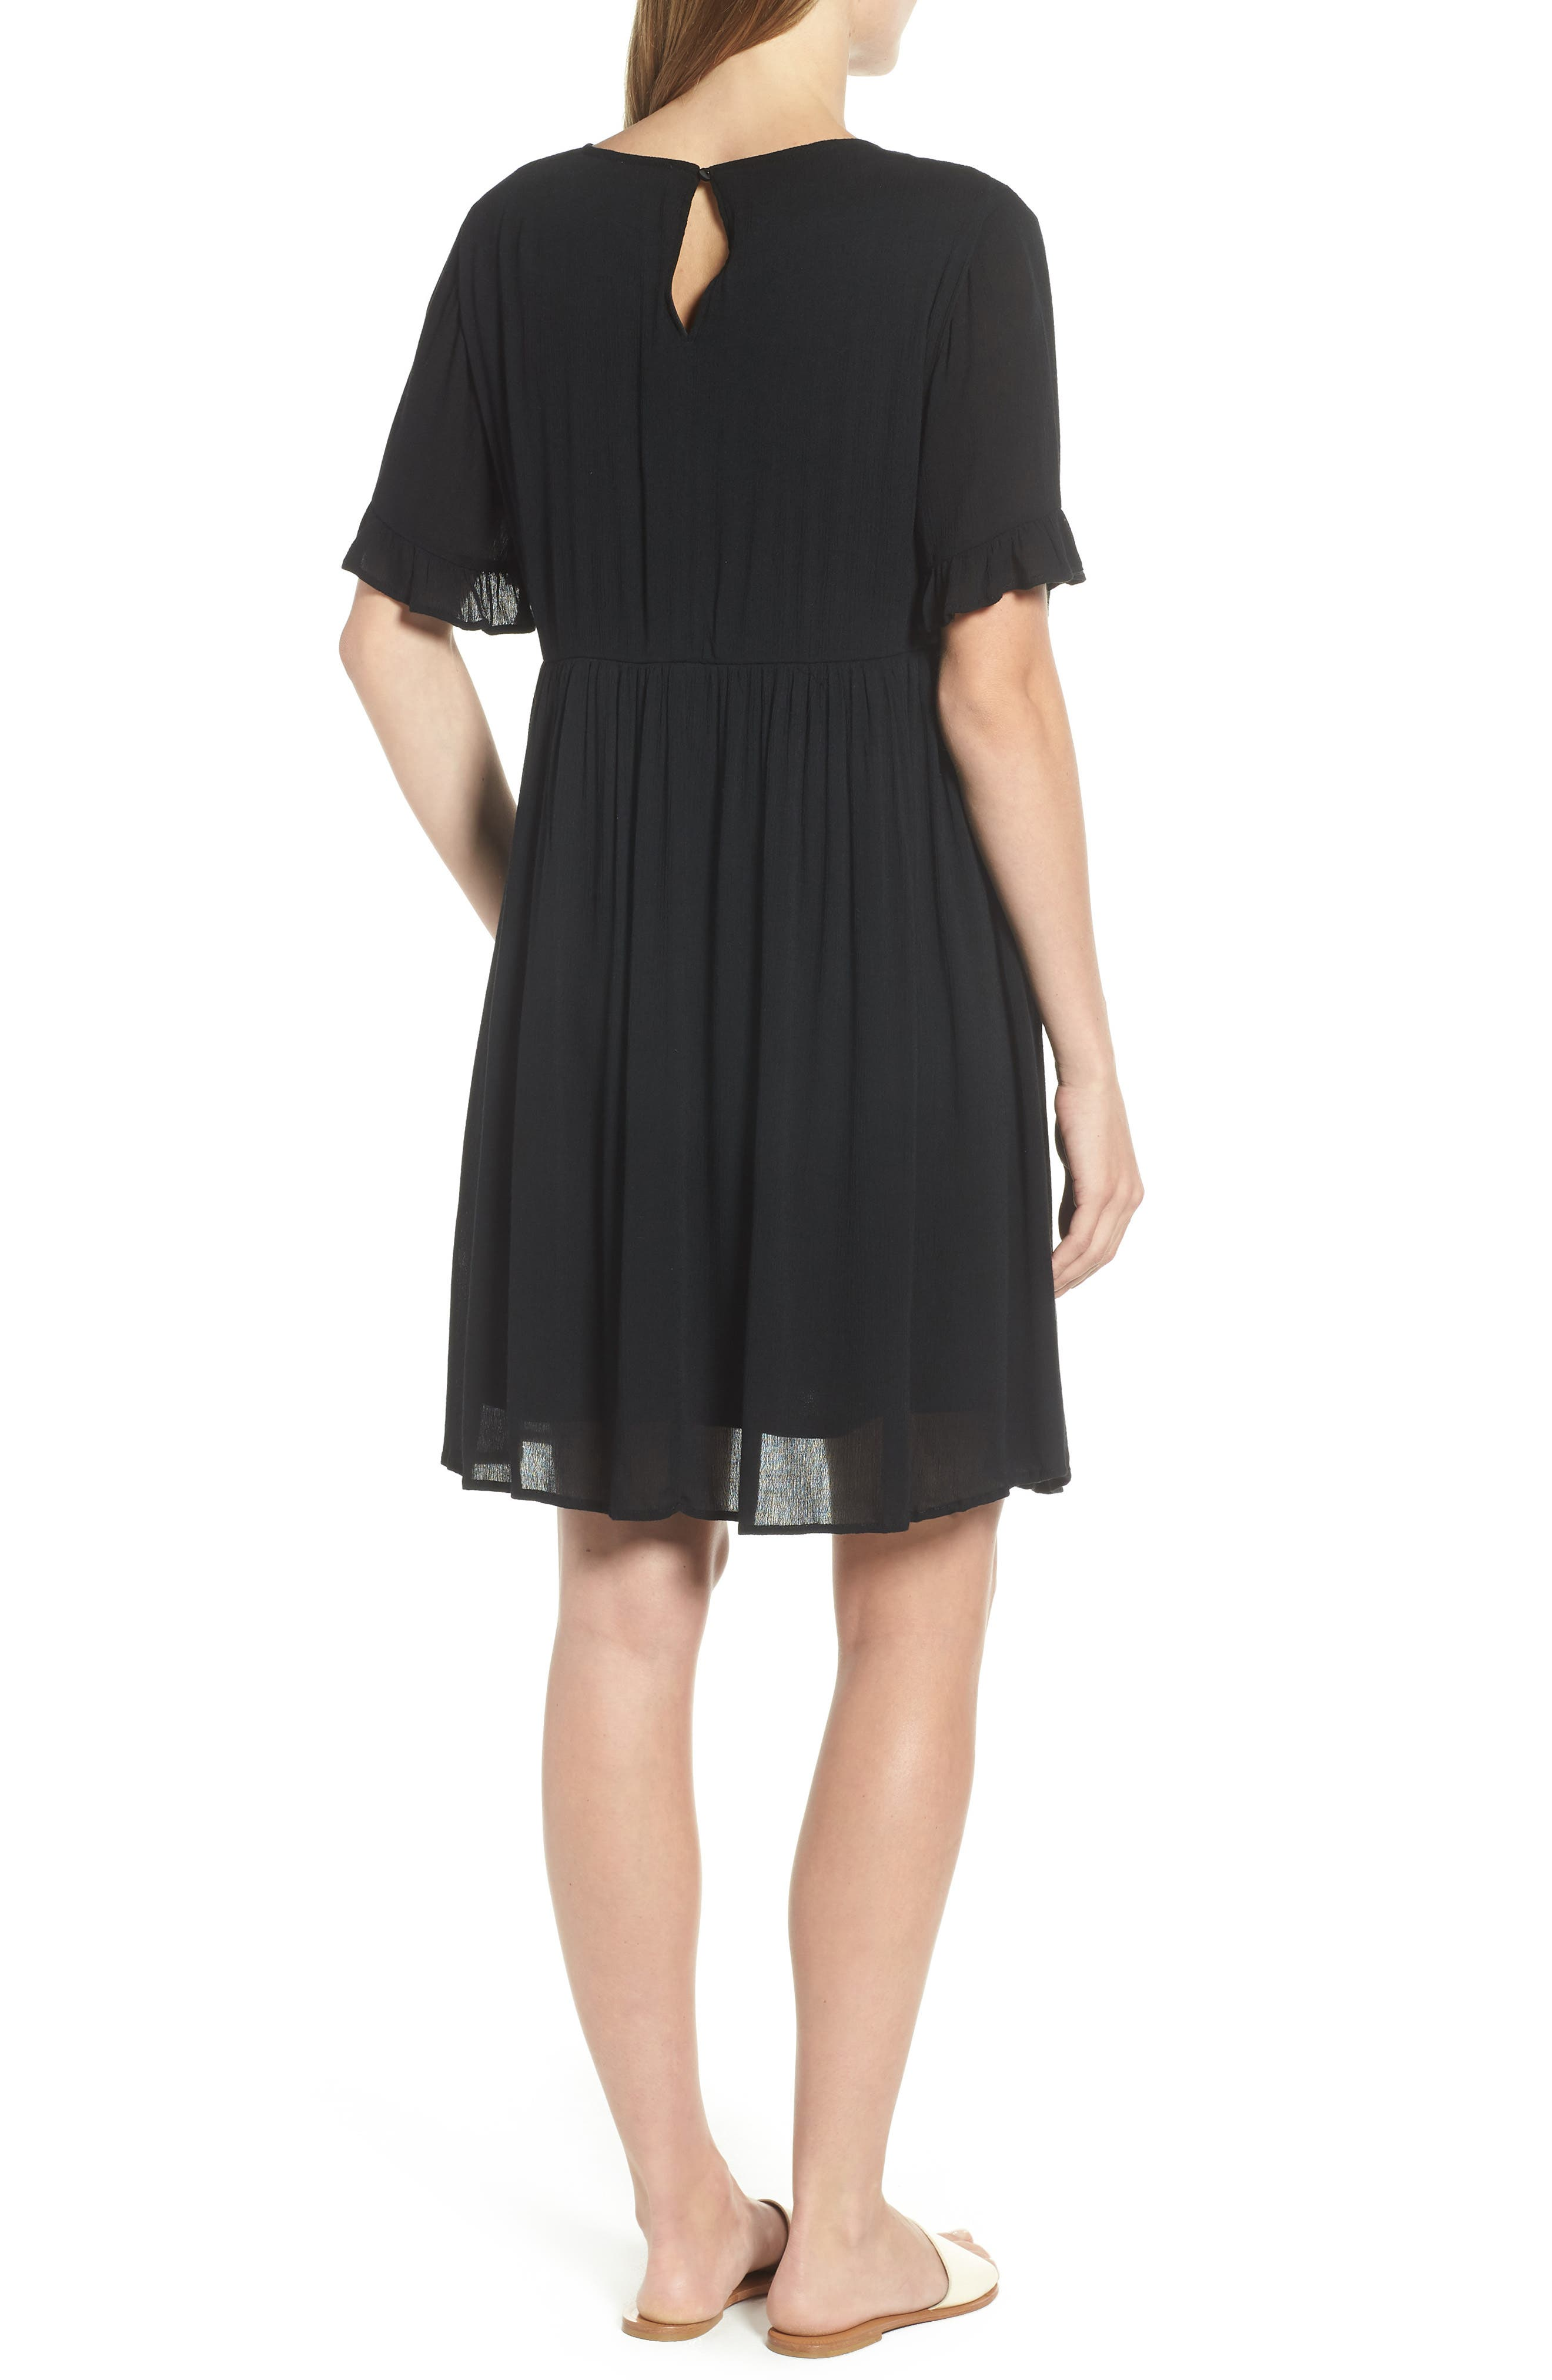 EVERLEIGH,                             Embroidered Dress,                             Alternate thumbnail 2, color,                             001